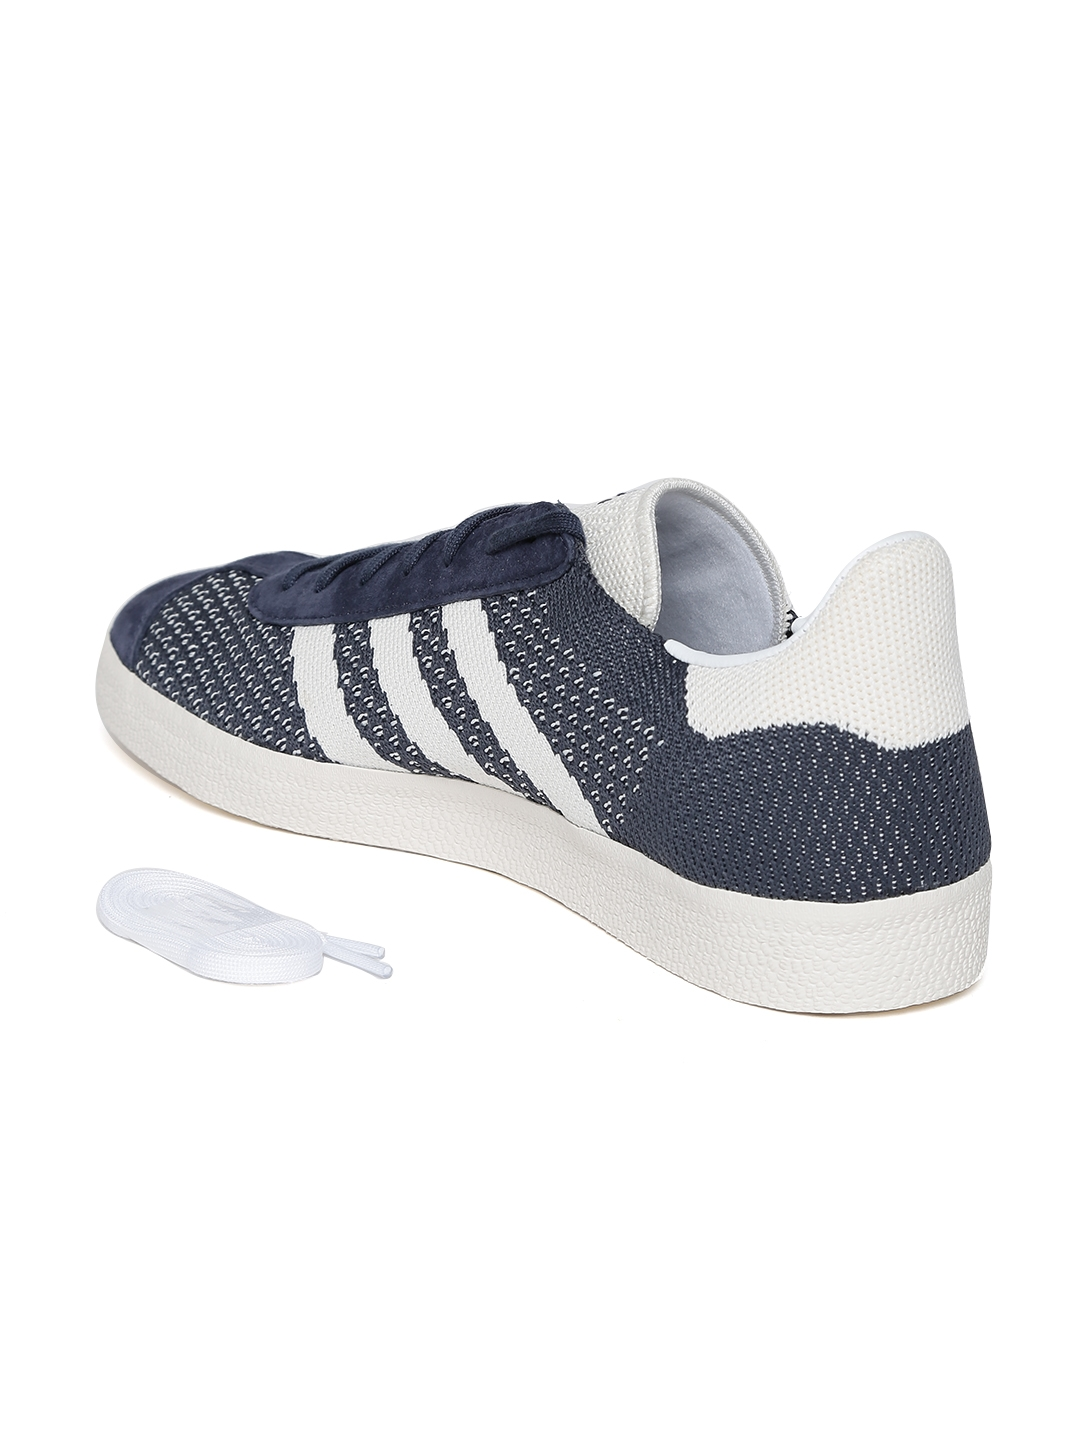 c2058af4b4ae Buy ADIDAS Originals Men Navy GAZELLE PrimeKnit Sneakers - Casual ...